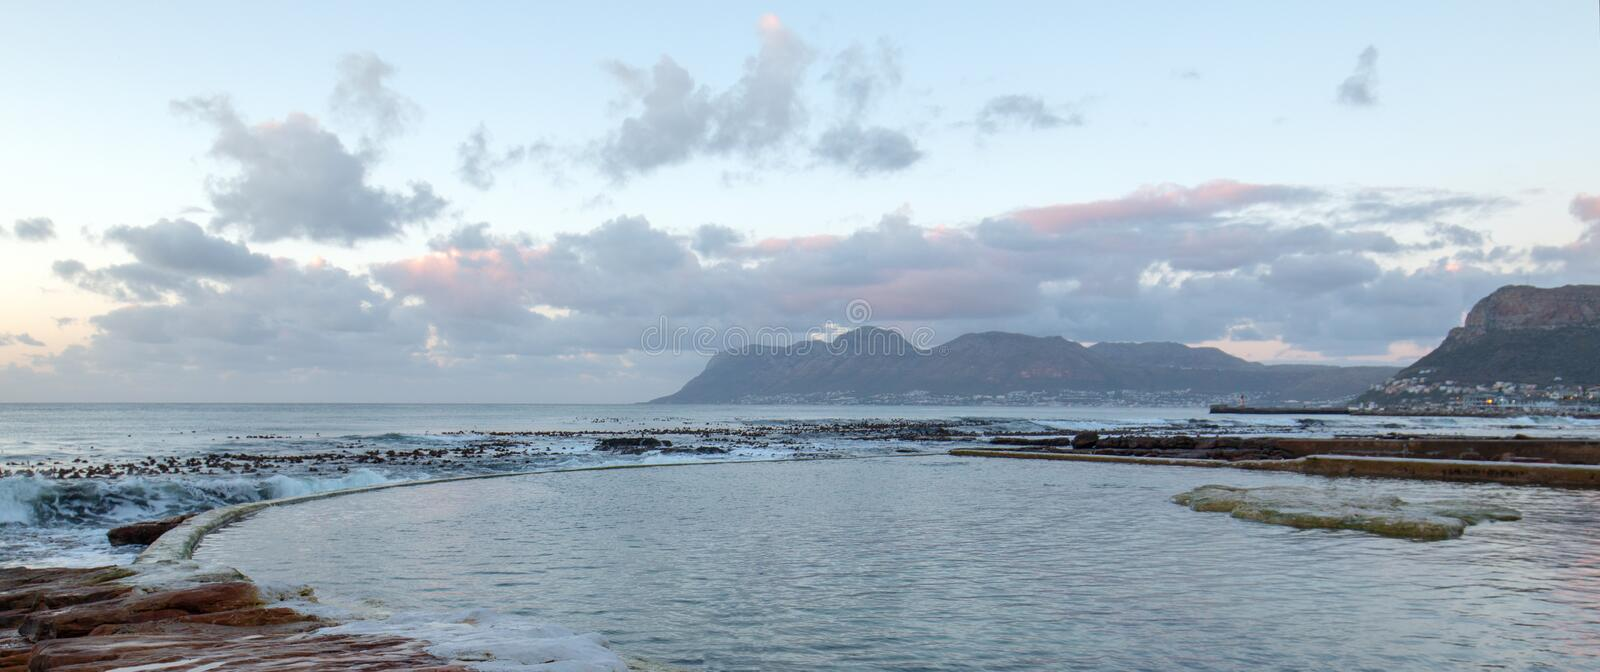 Early morning Dawn Sunrise over Dale Brook Tidal Swim Pool in Cape Town South Africa royalty free stock photos